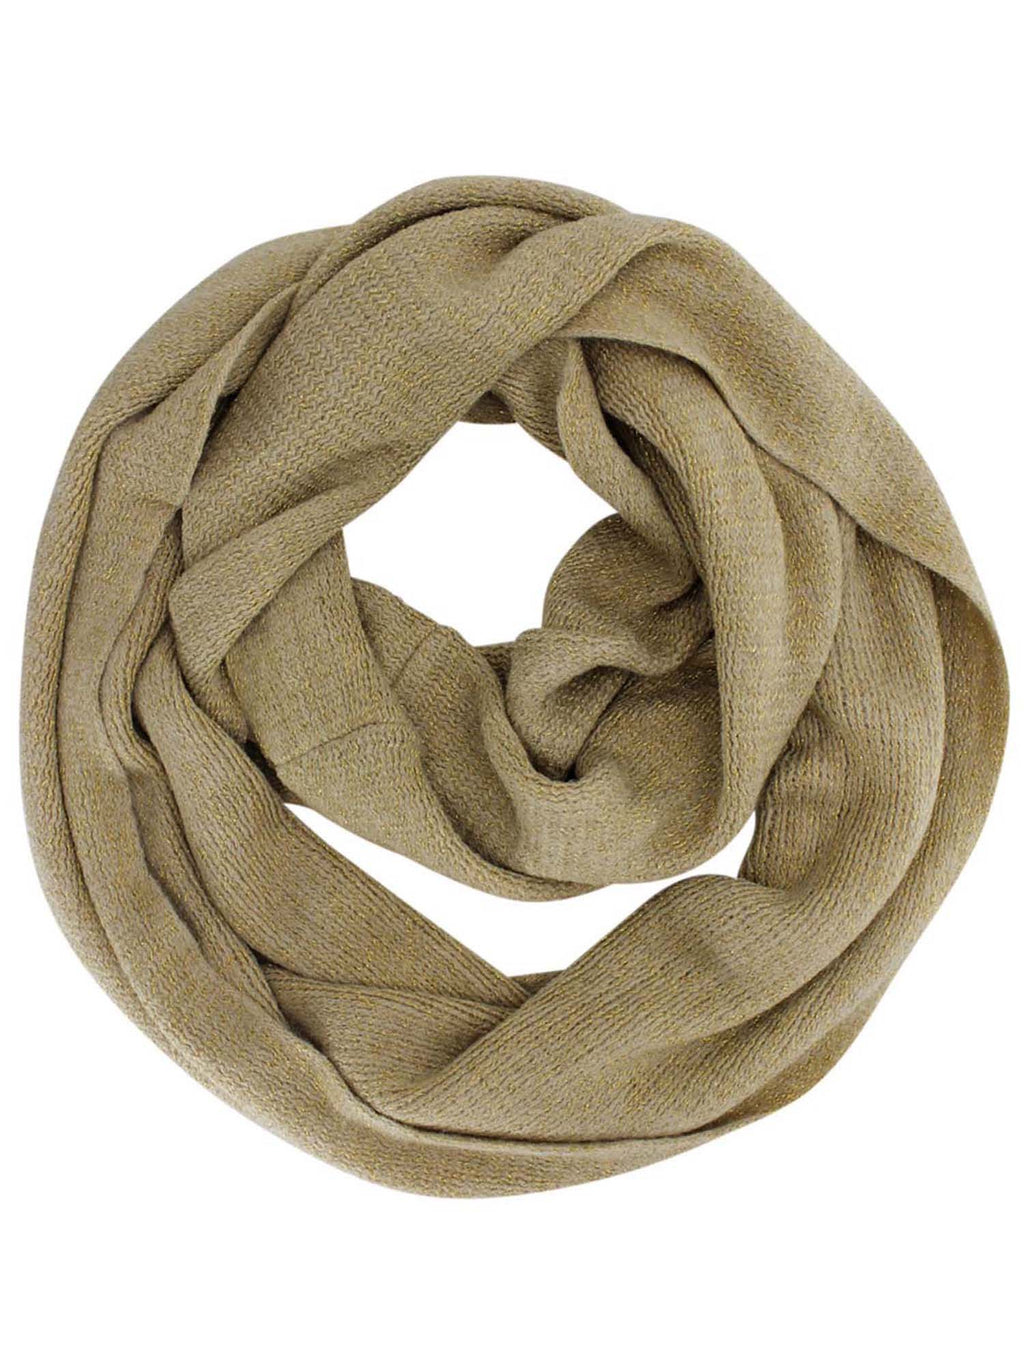 Metallic Winter Knit Circle Infinity Scarf